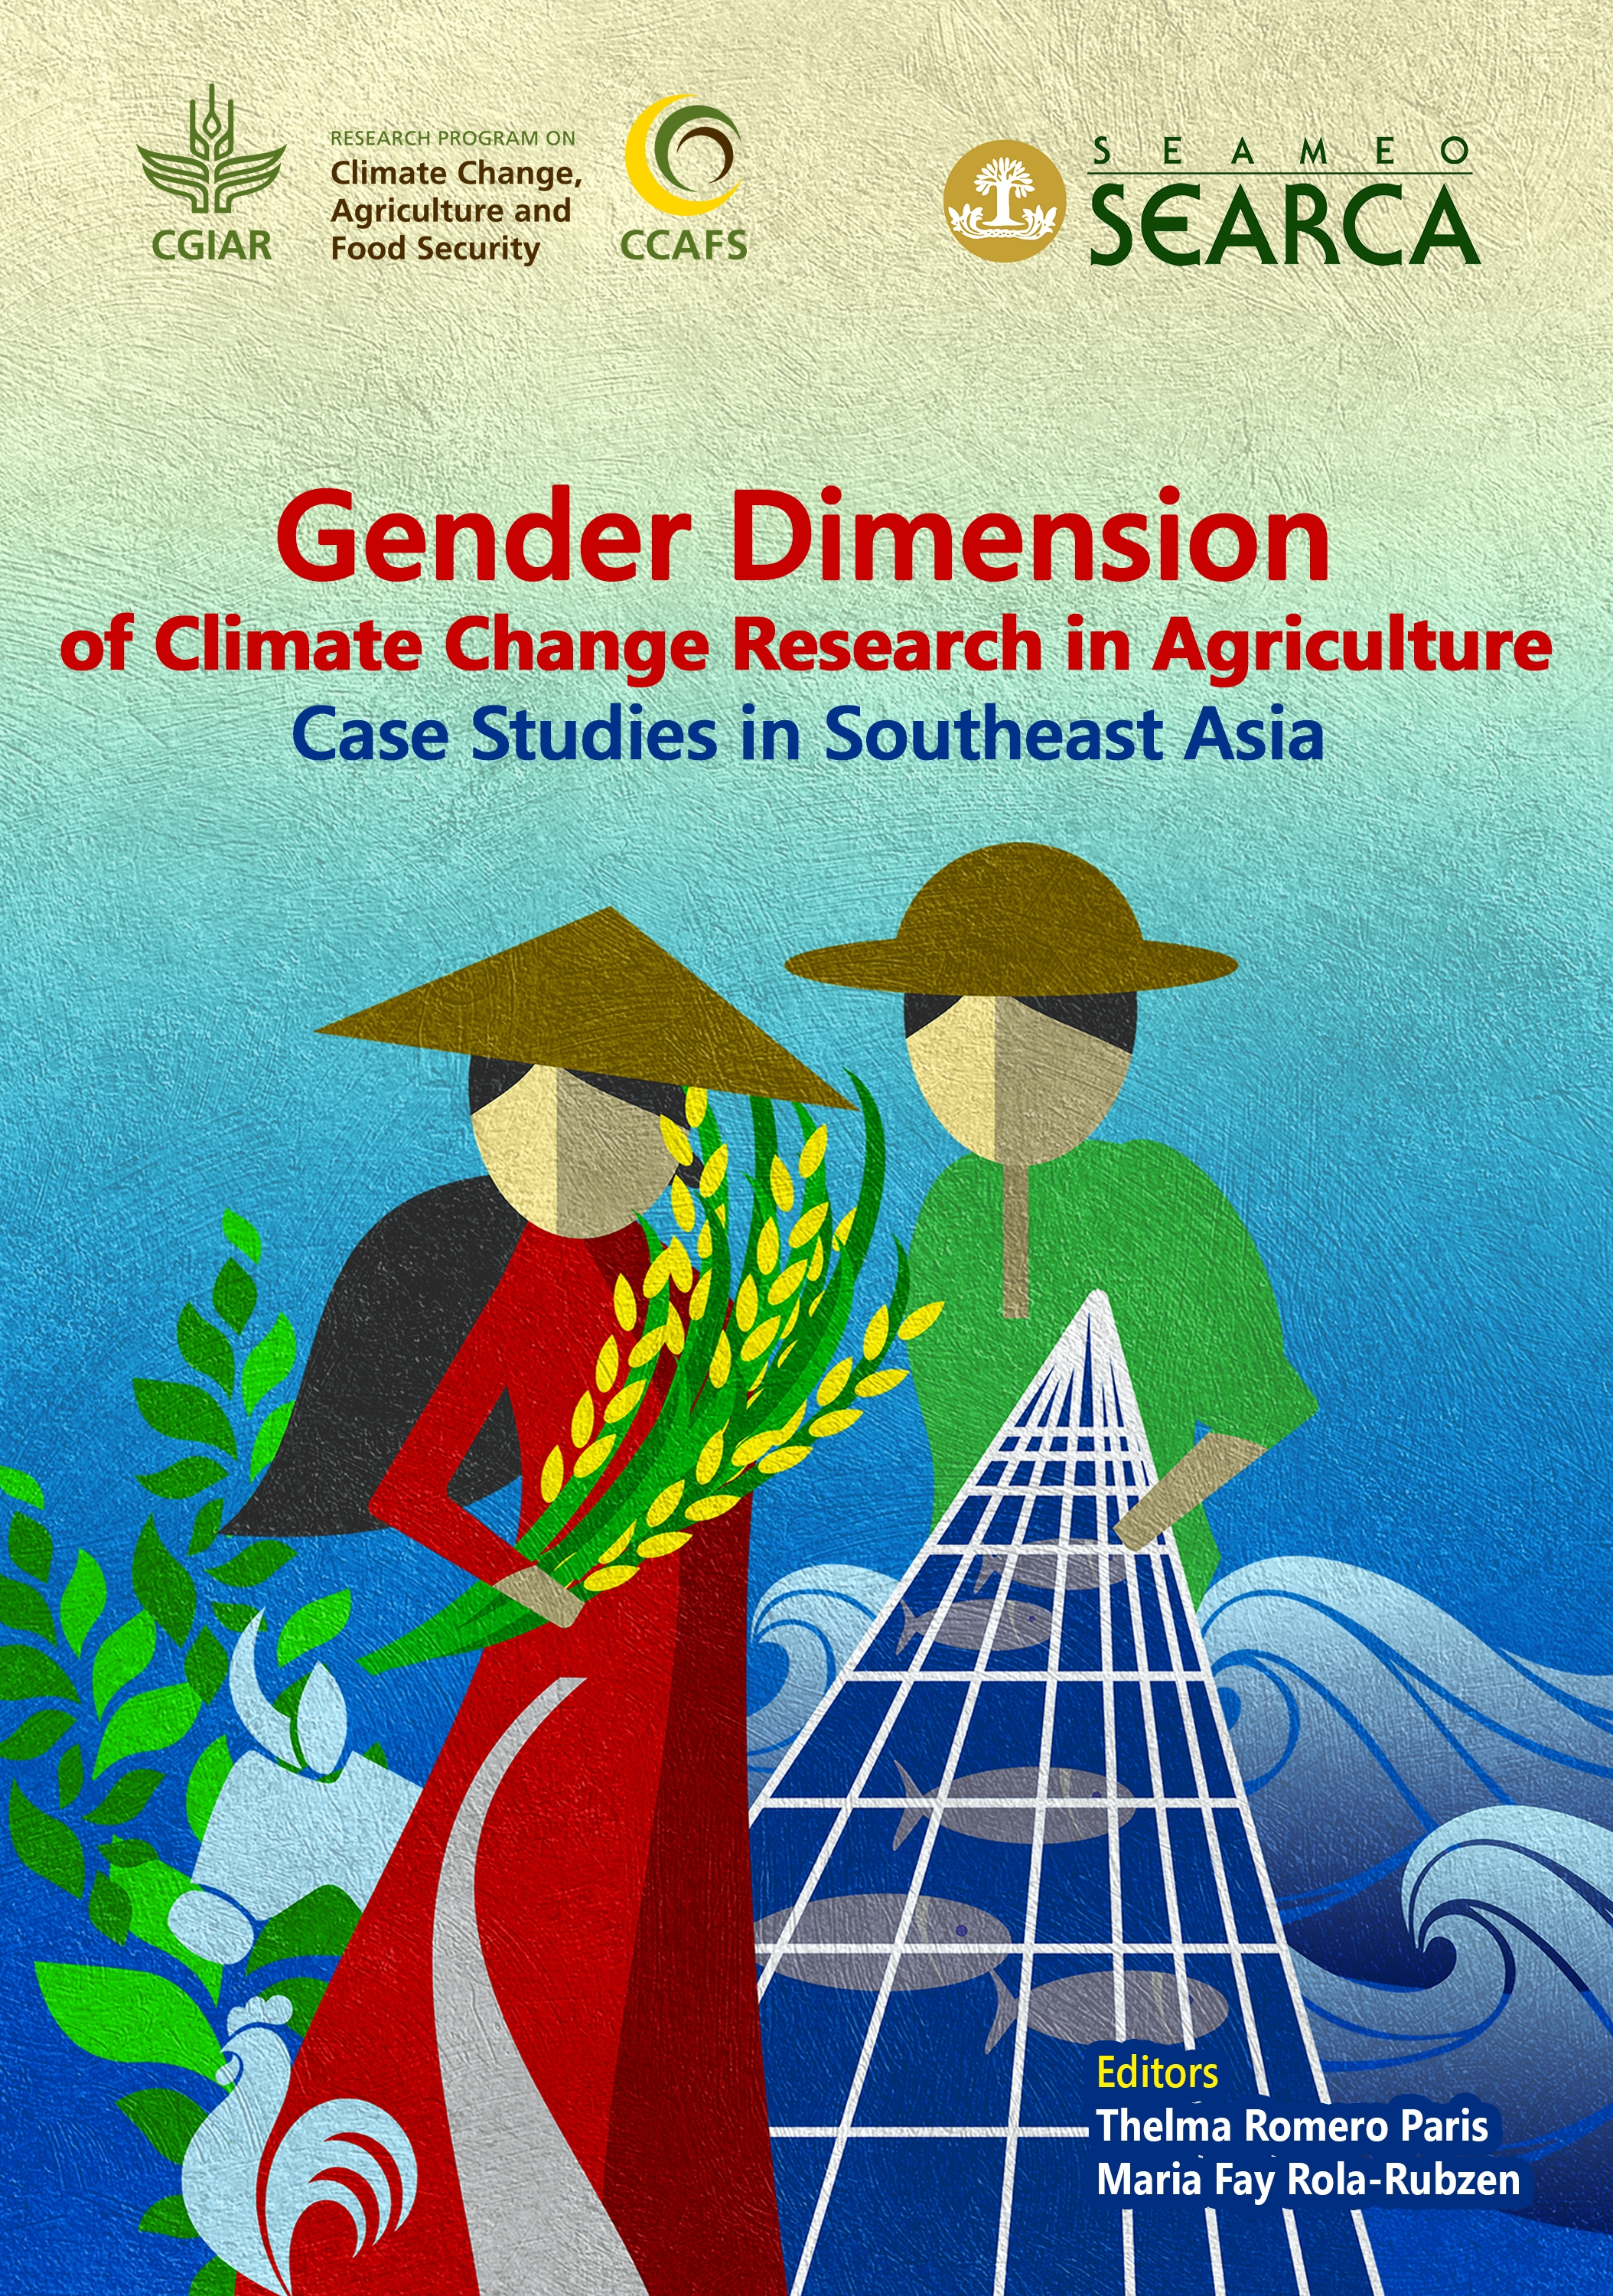 Gender Dimension of Climate Change Research in Agriculture: Case Studies in Southeast Asia